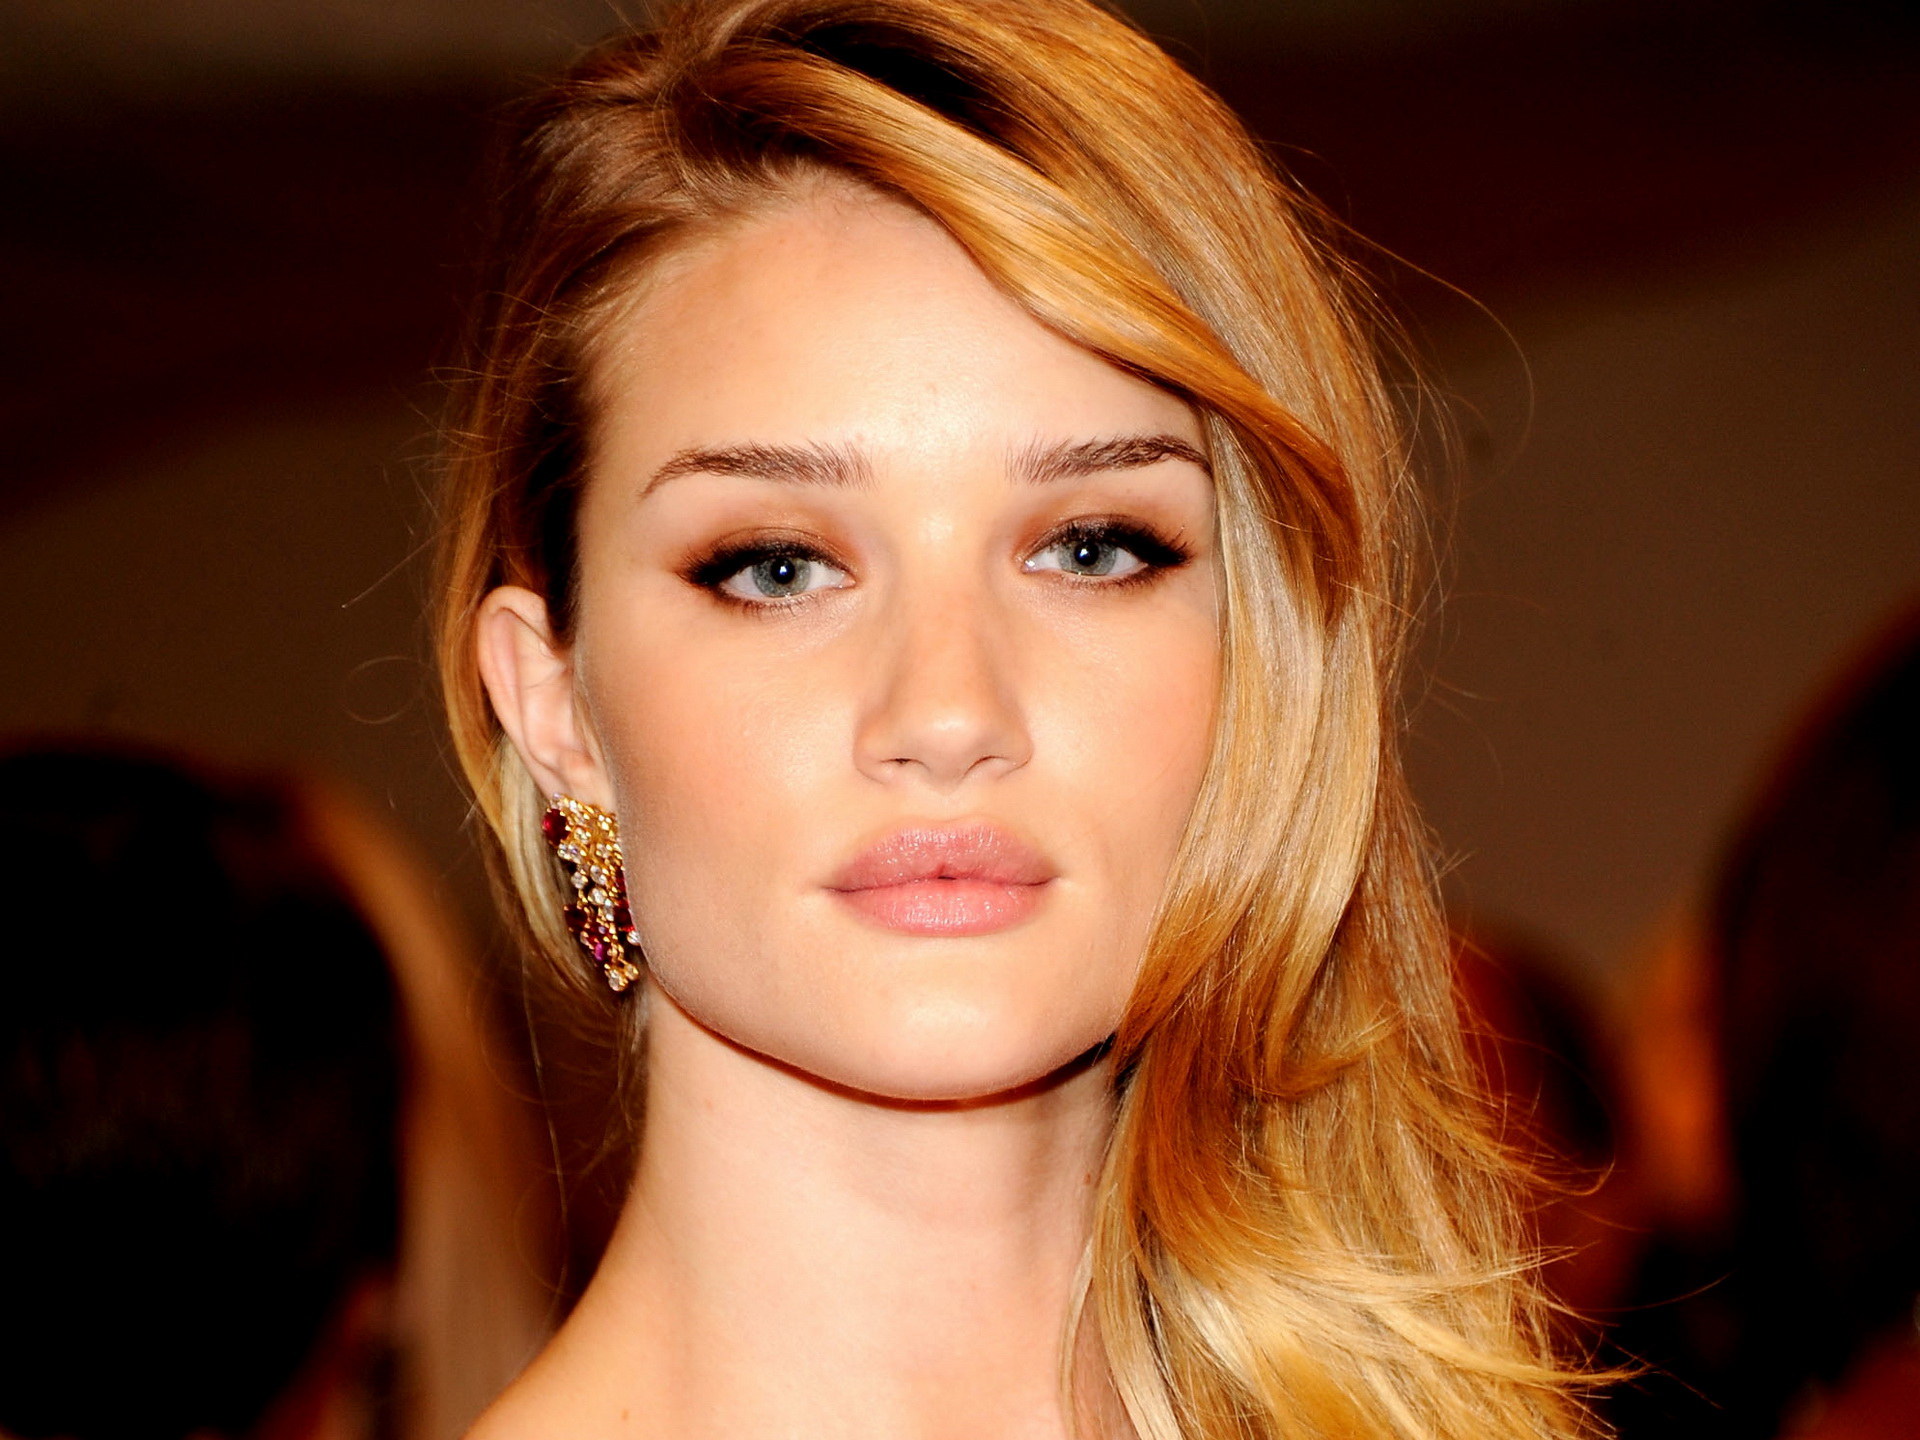 Rosie Huntington Whiteley Romantic Eyes Photos